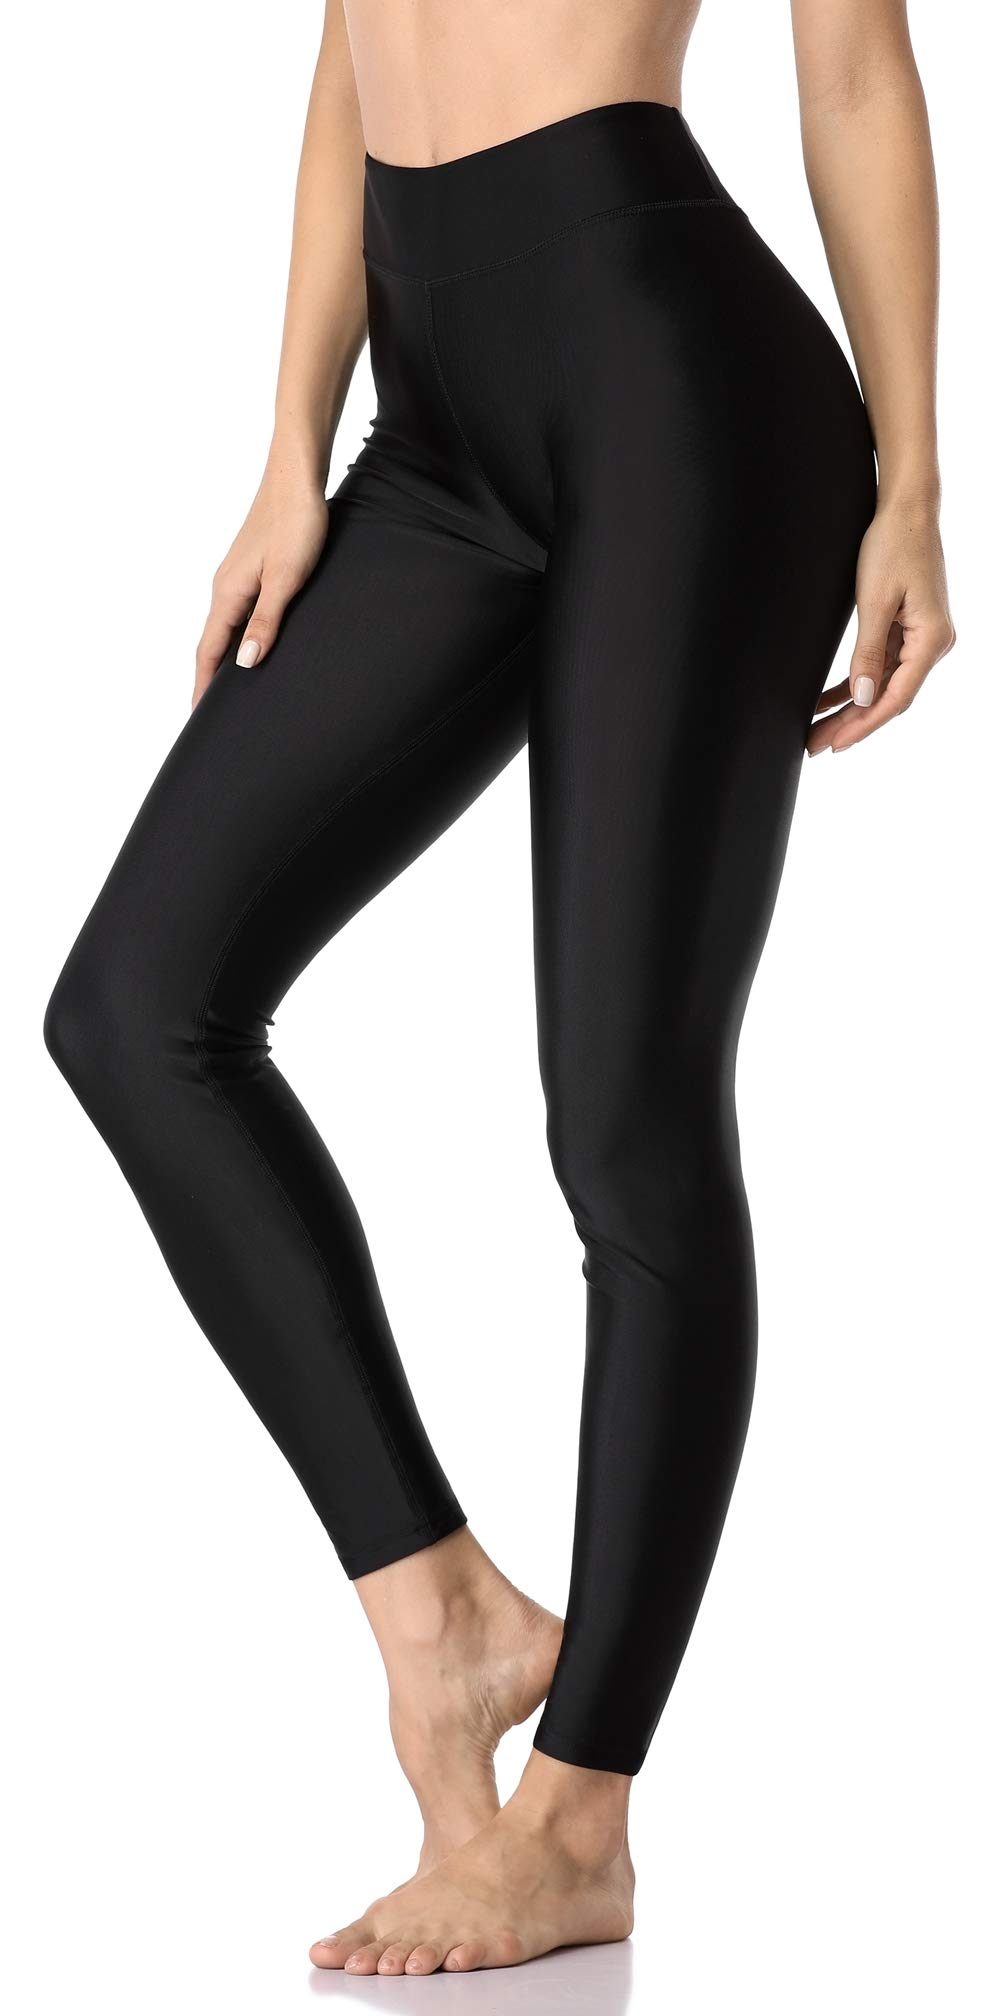 ATTRACO Womens High Waisted Leggings UPF 50+ Diving Swimming Pants Black Medium by ATTRACO